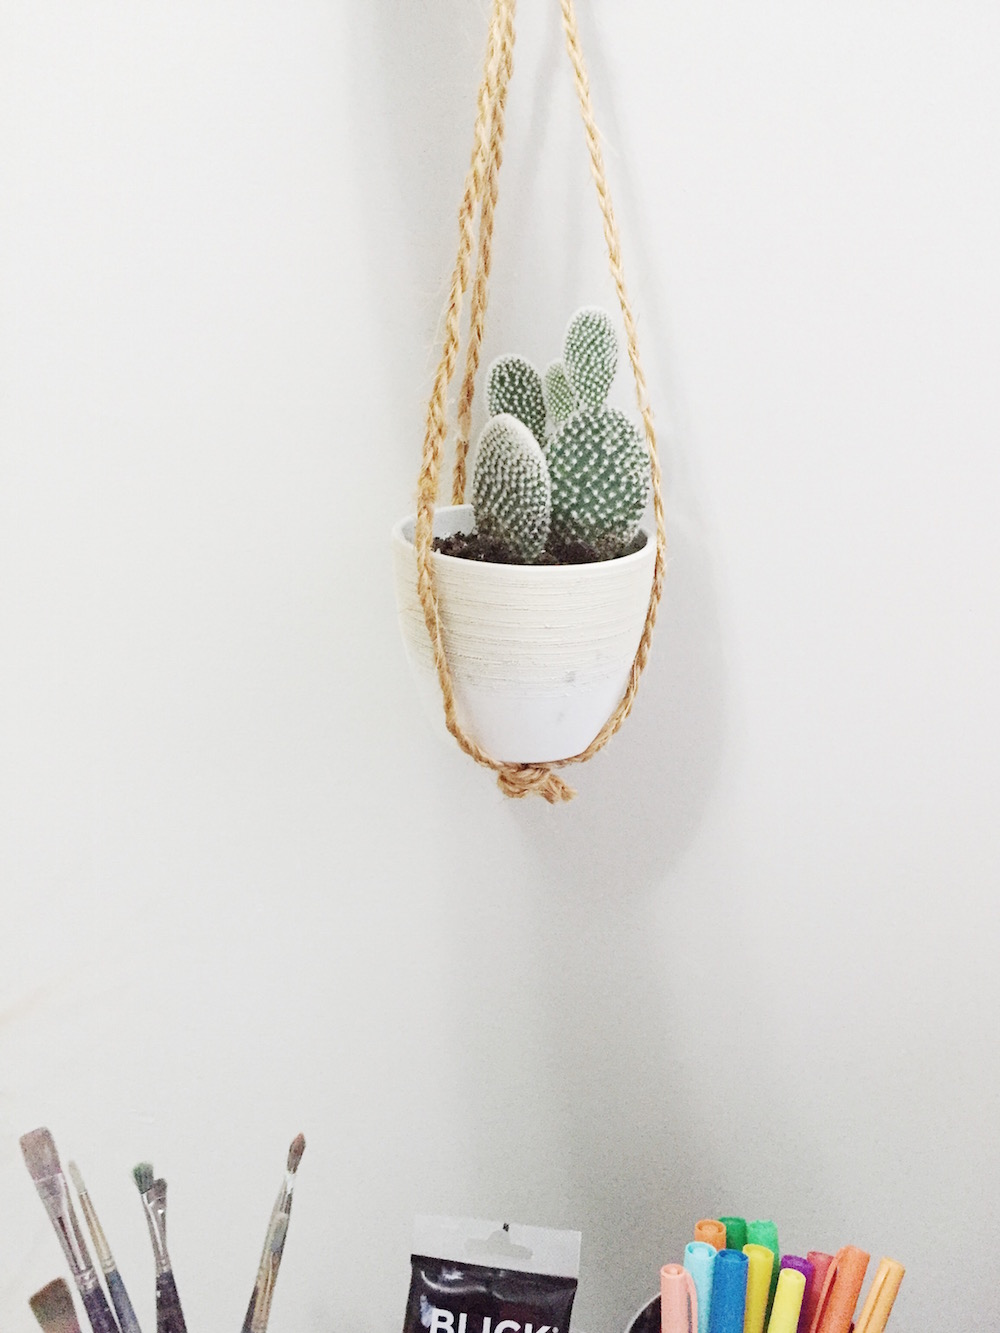 Diy Macrame Plant Hanger The Effortless Chic,Outdoor Simple Christmas House Decorations Outside